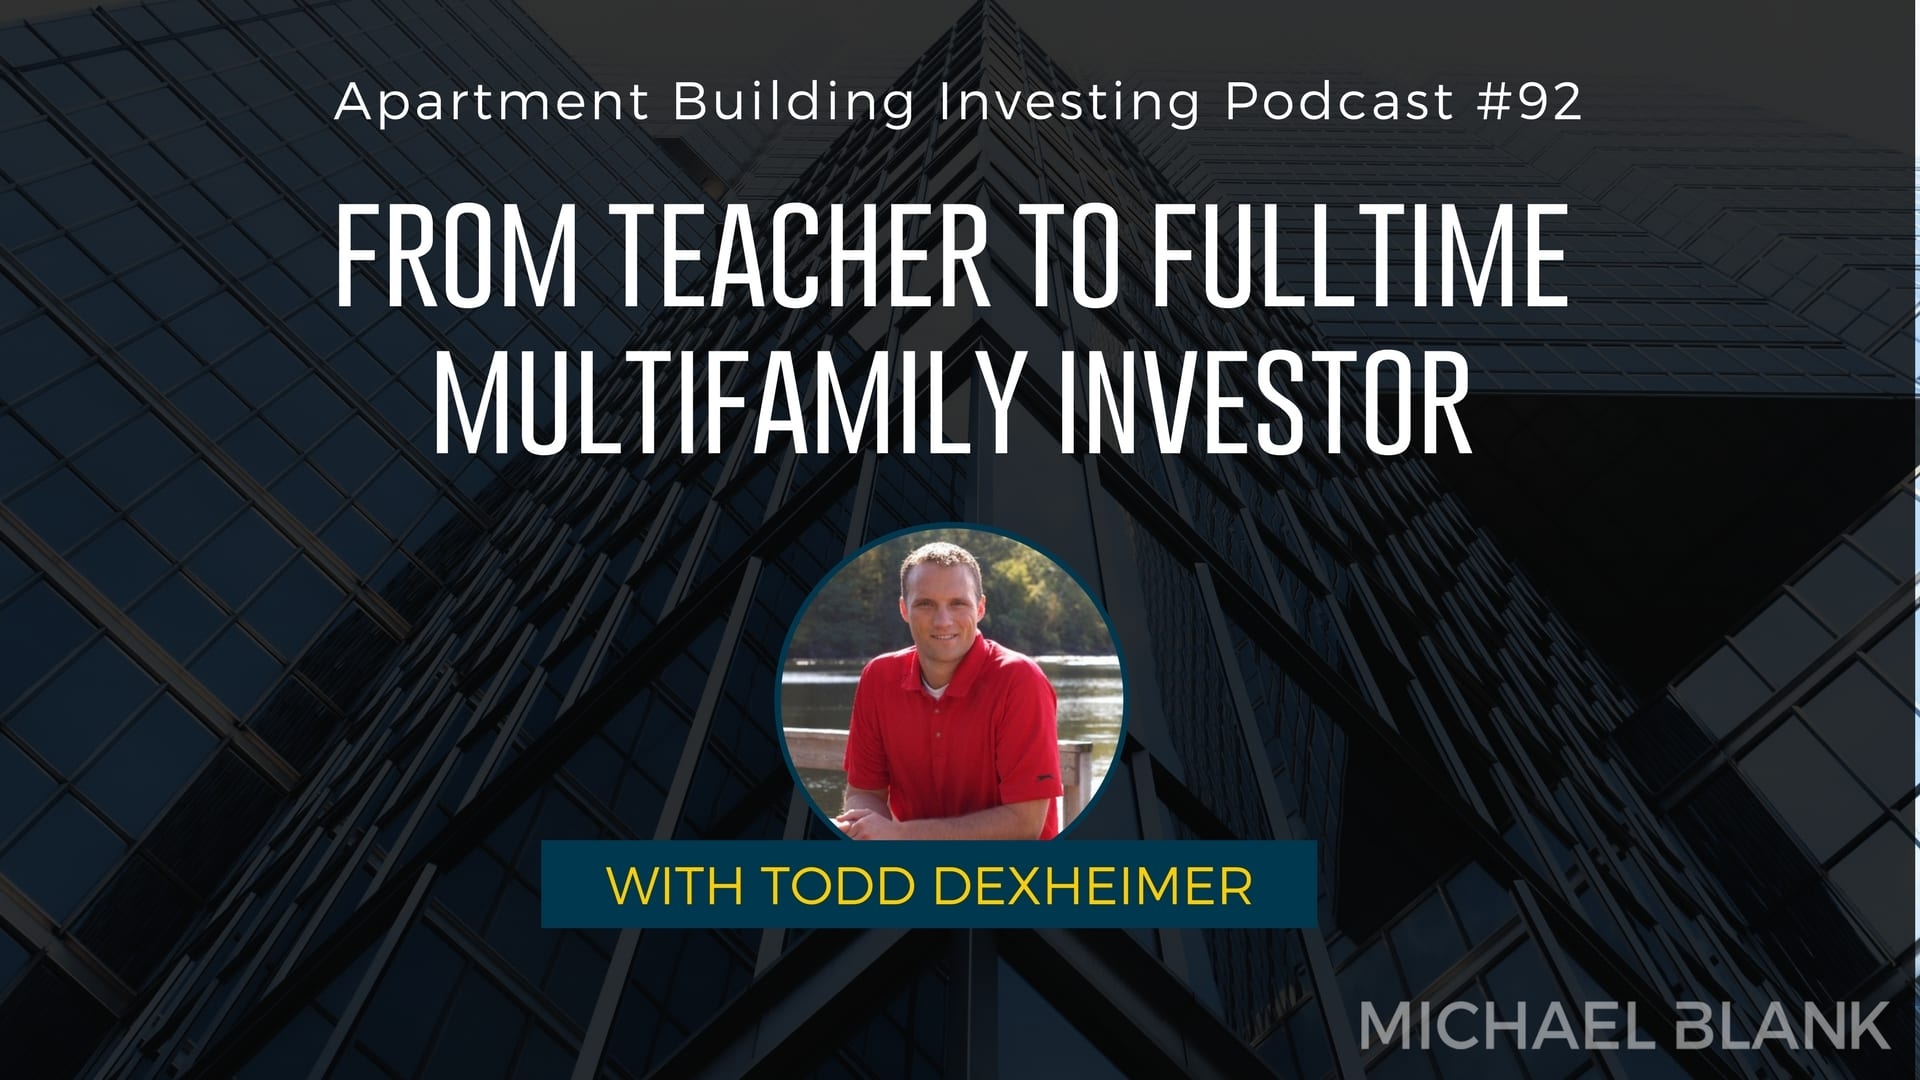 MB 092: From Teacher to Fulltime Multifamily Investor – with Todd Dexheimer